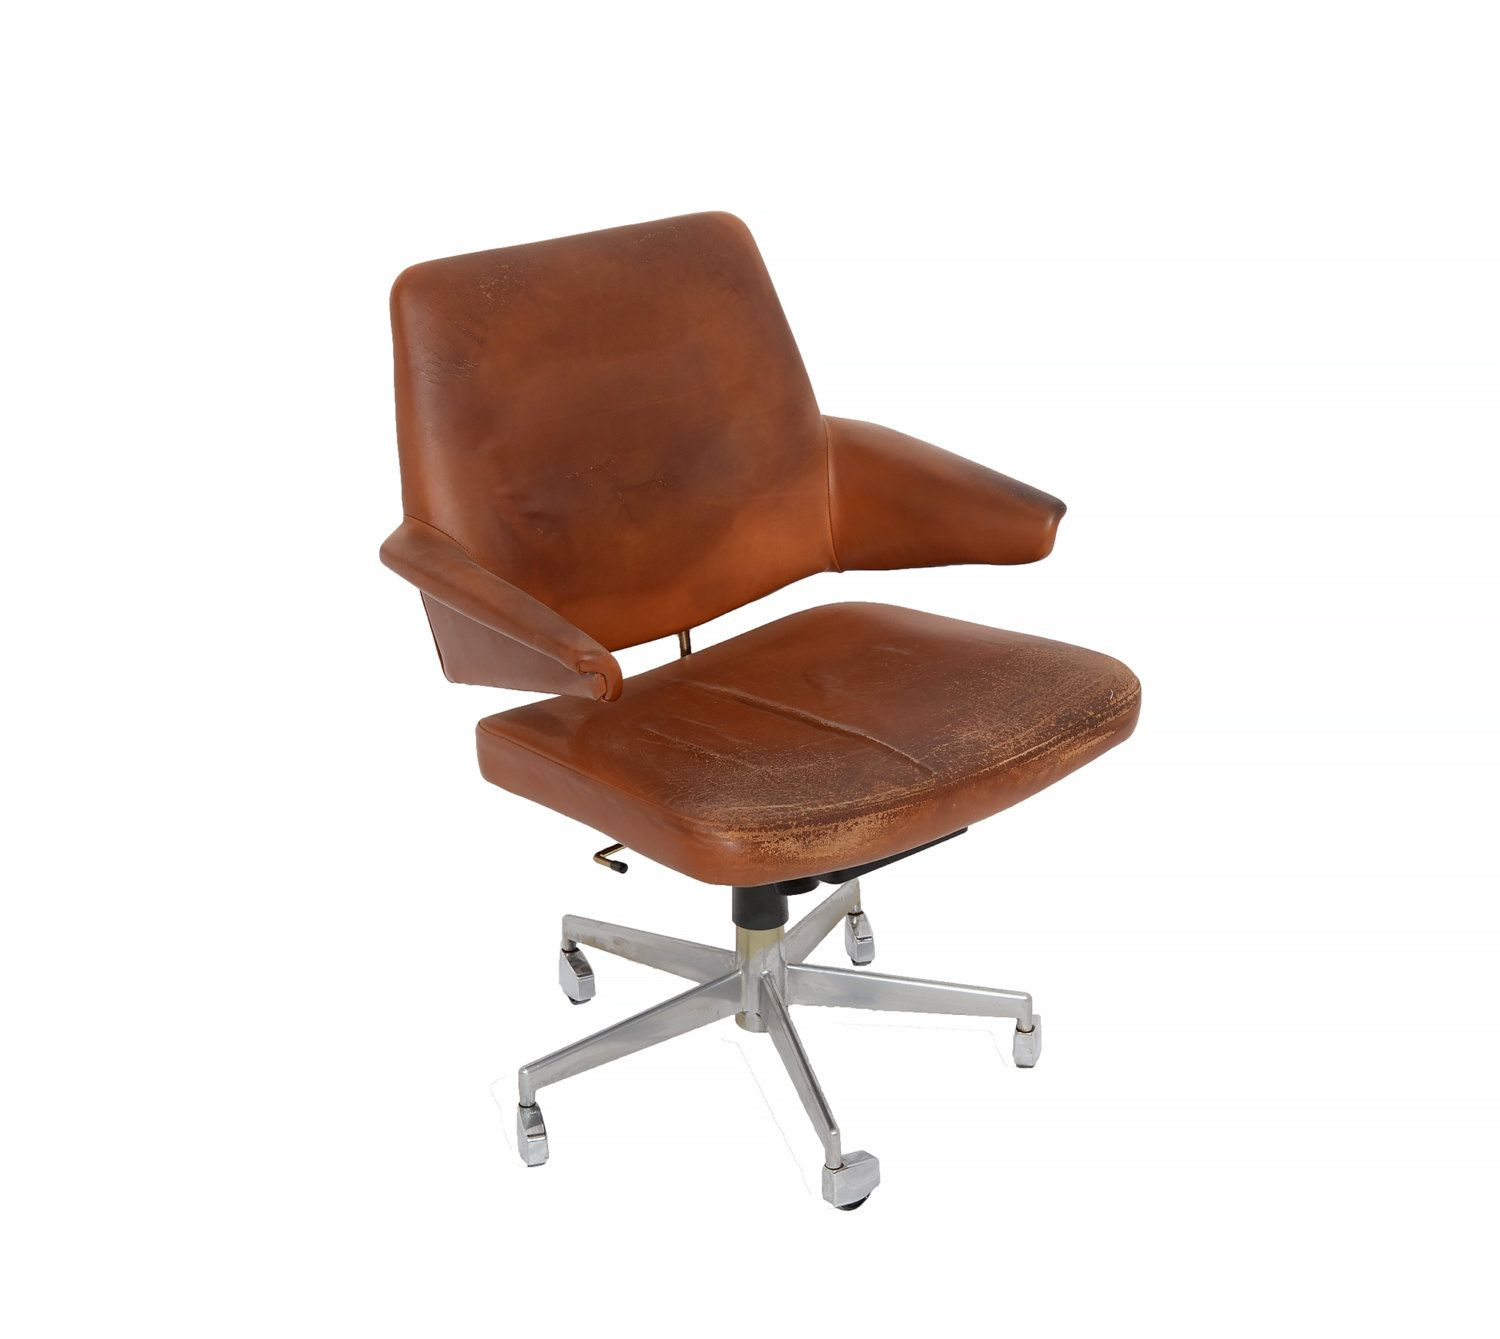 modern office chair leather. Leather Office Chair, Mid Century Modern Danish Desk Chair Teak Arms By HearthsideHome On M